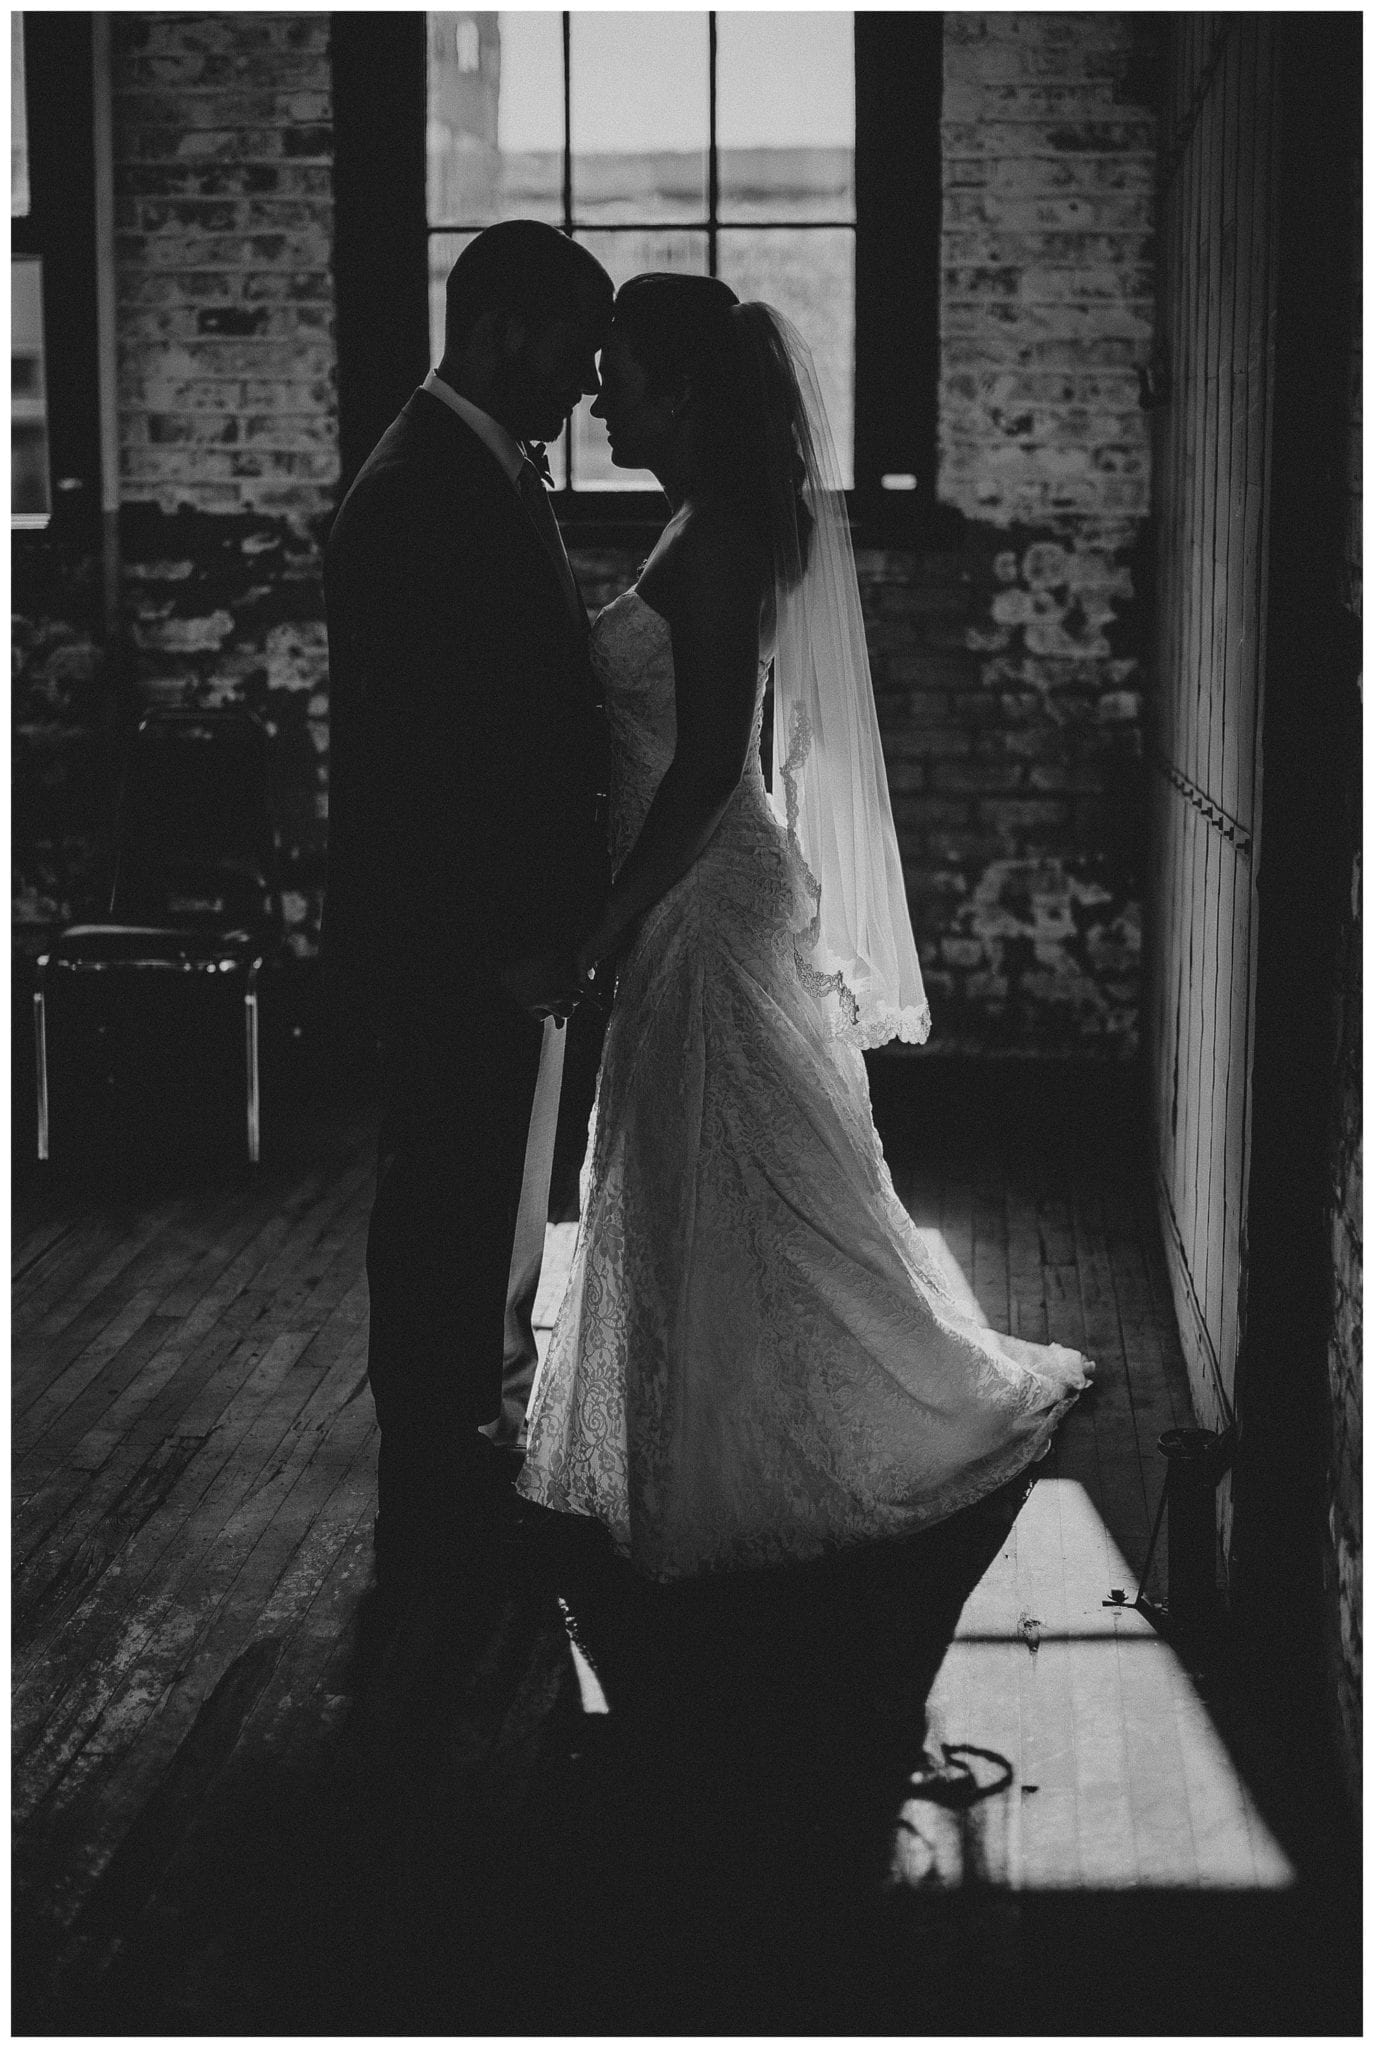 Wedding at the Ford piquette plant | Michigan Wedding Photographers | Captured Couture, LLC